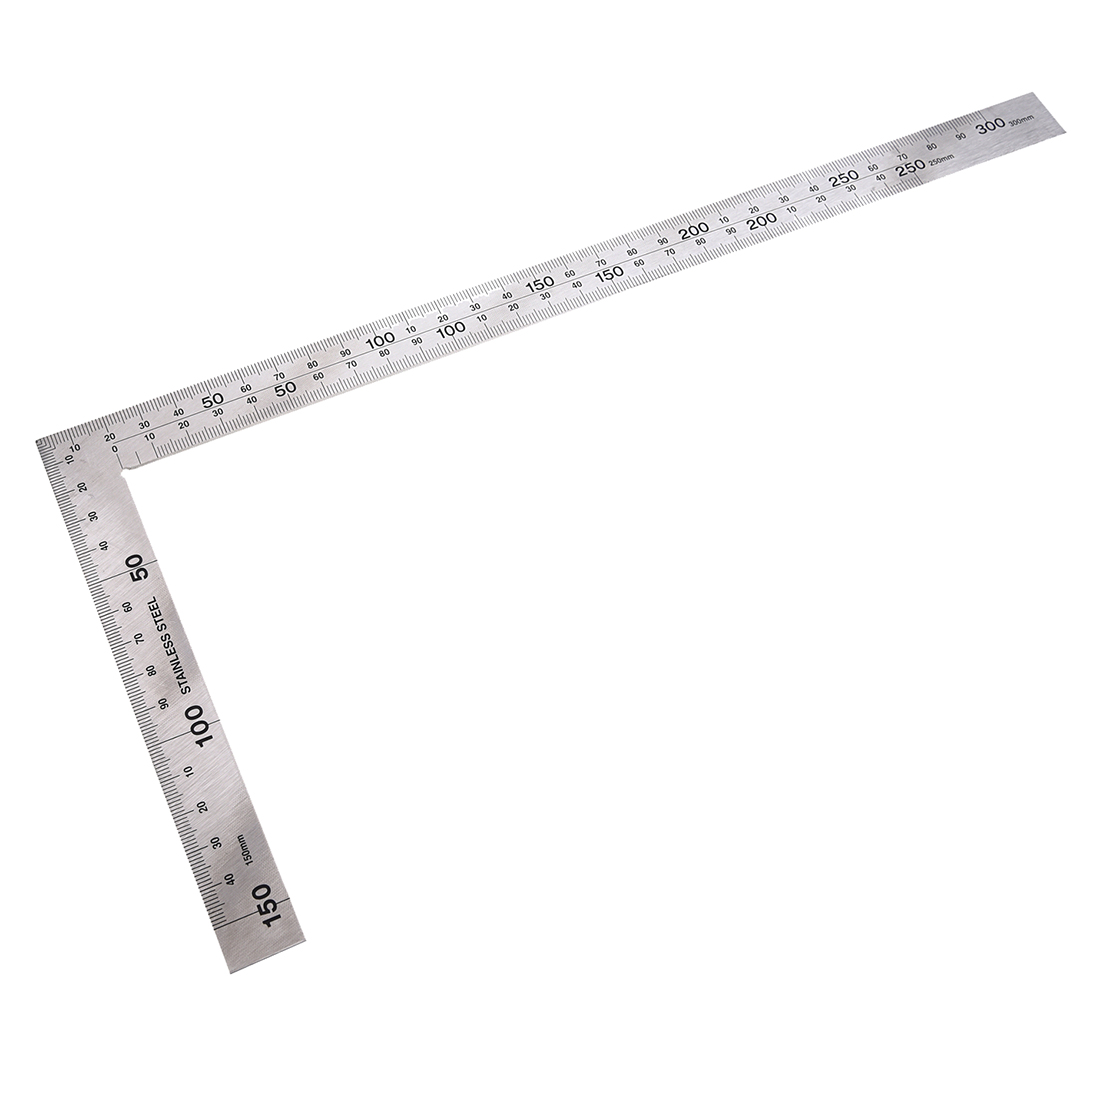 цена на Wholesale 10pcs of Stainless Steel 150 x 300mm 90 Degree Angle Metric Try Mitre Square Ruler